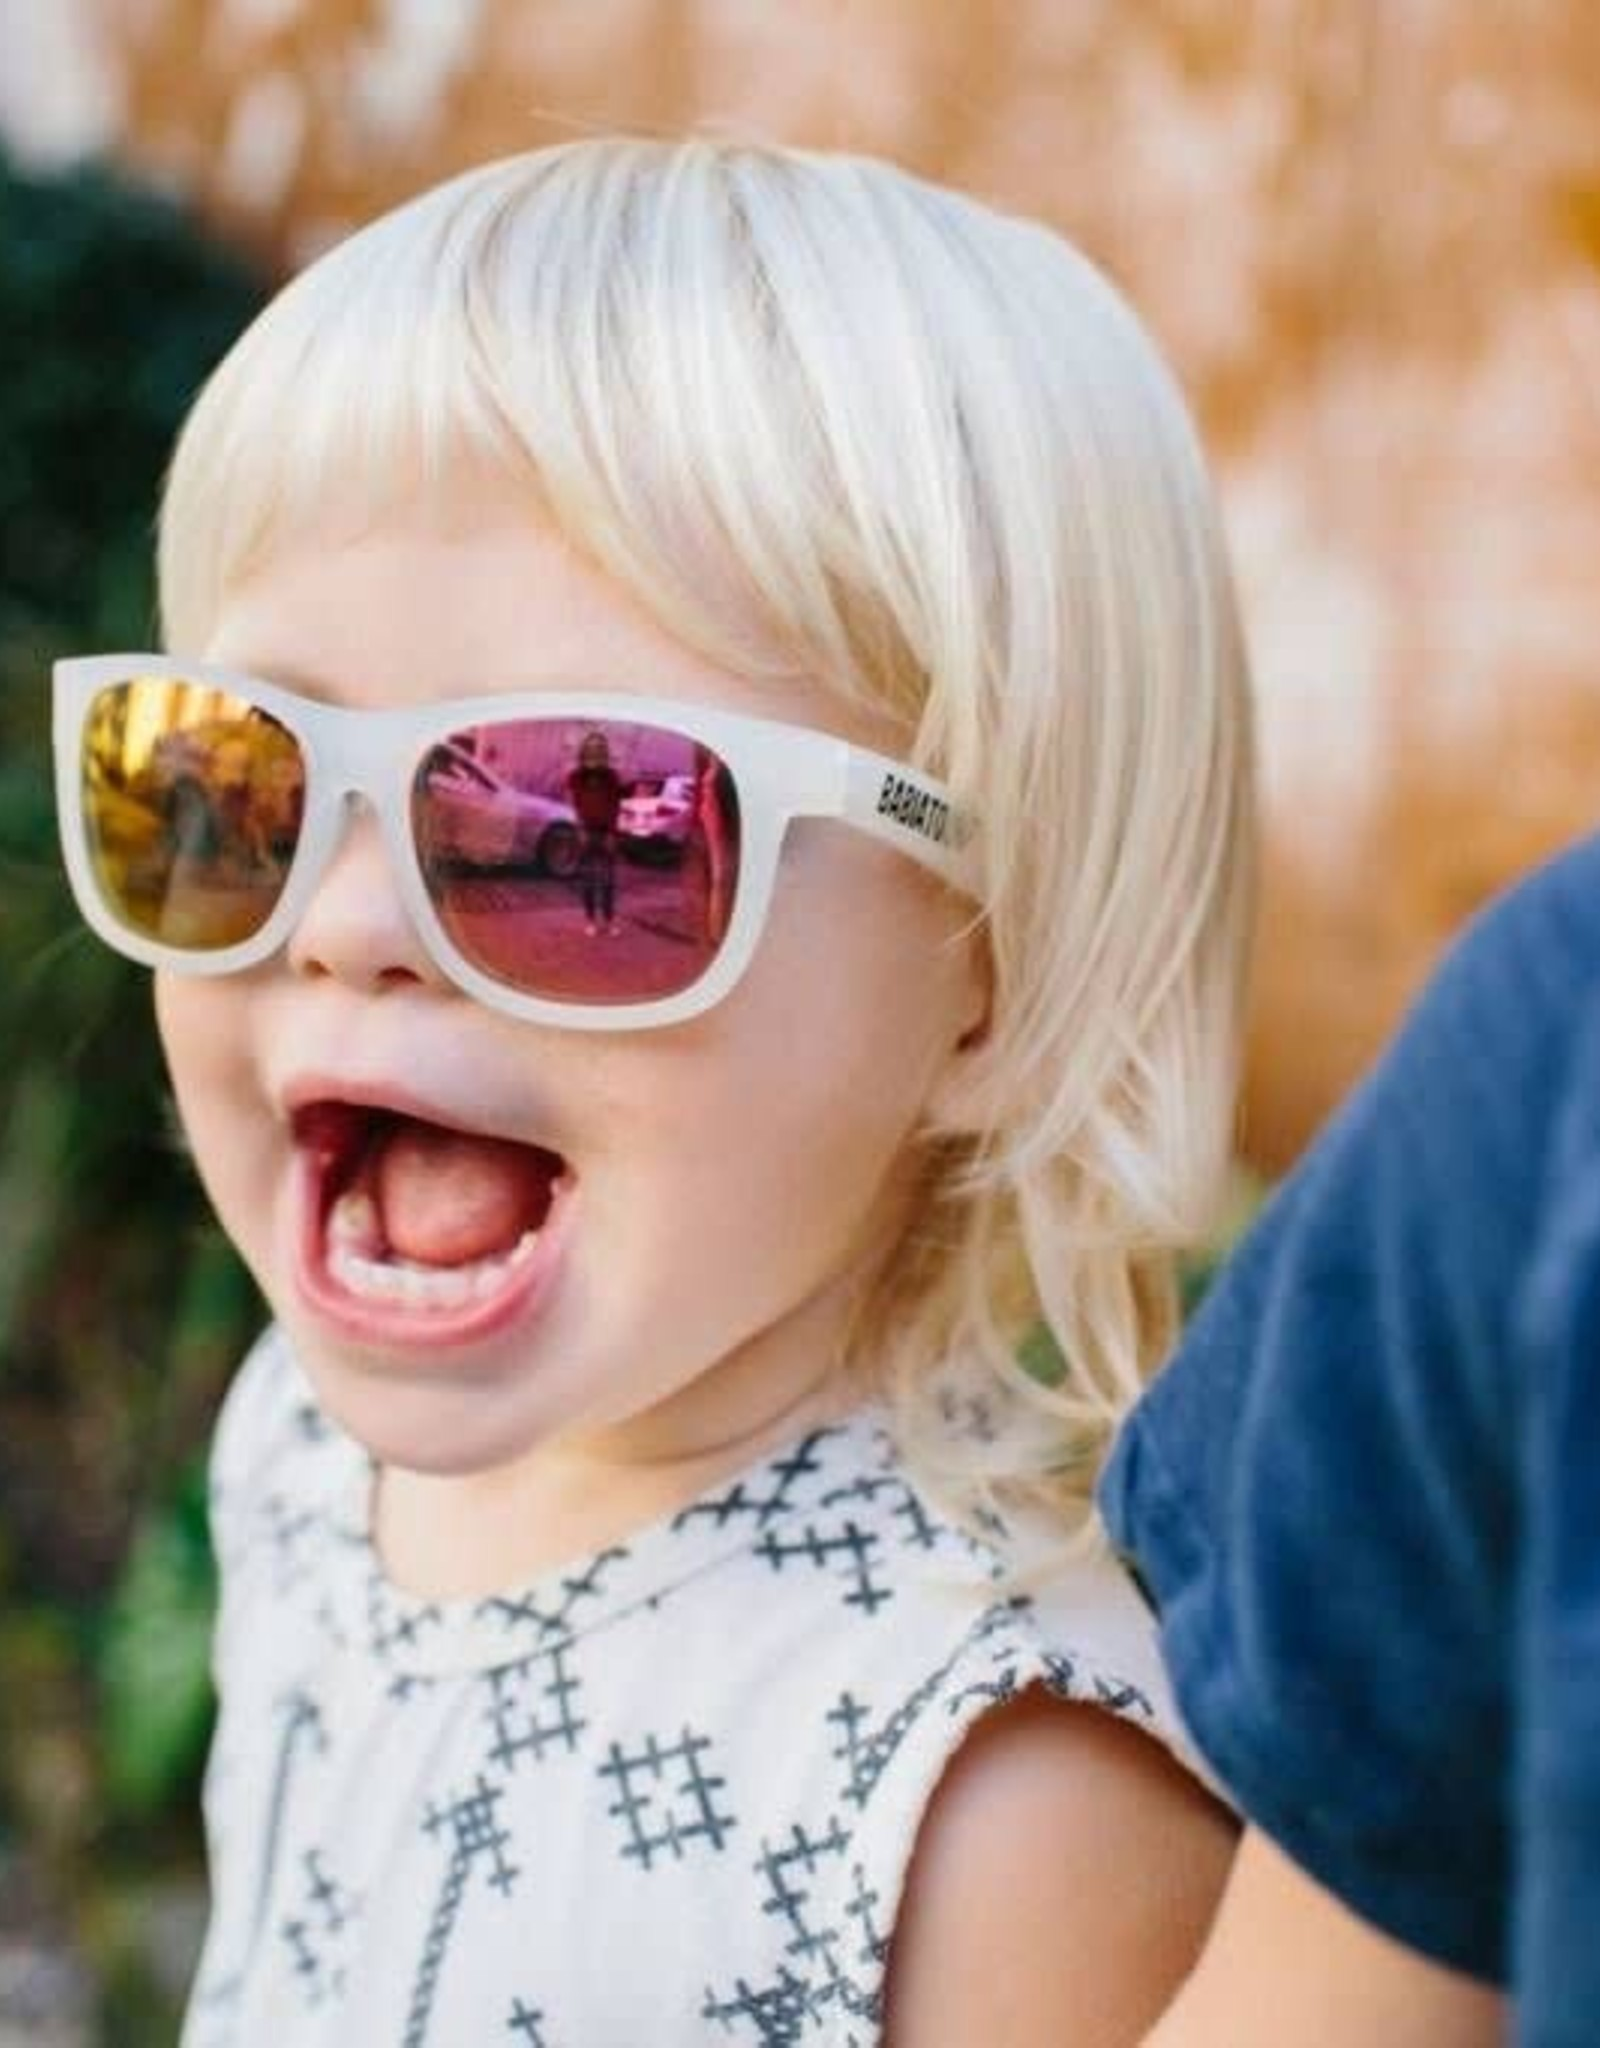 Babiators, Premium Sunglasses